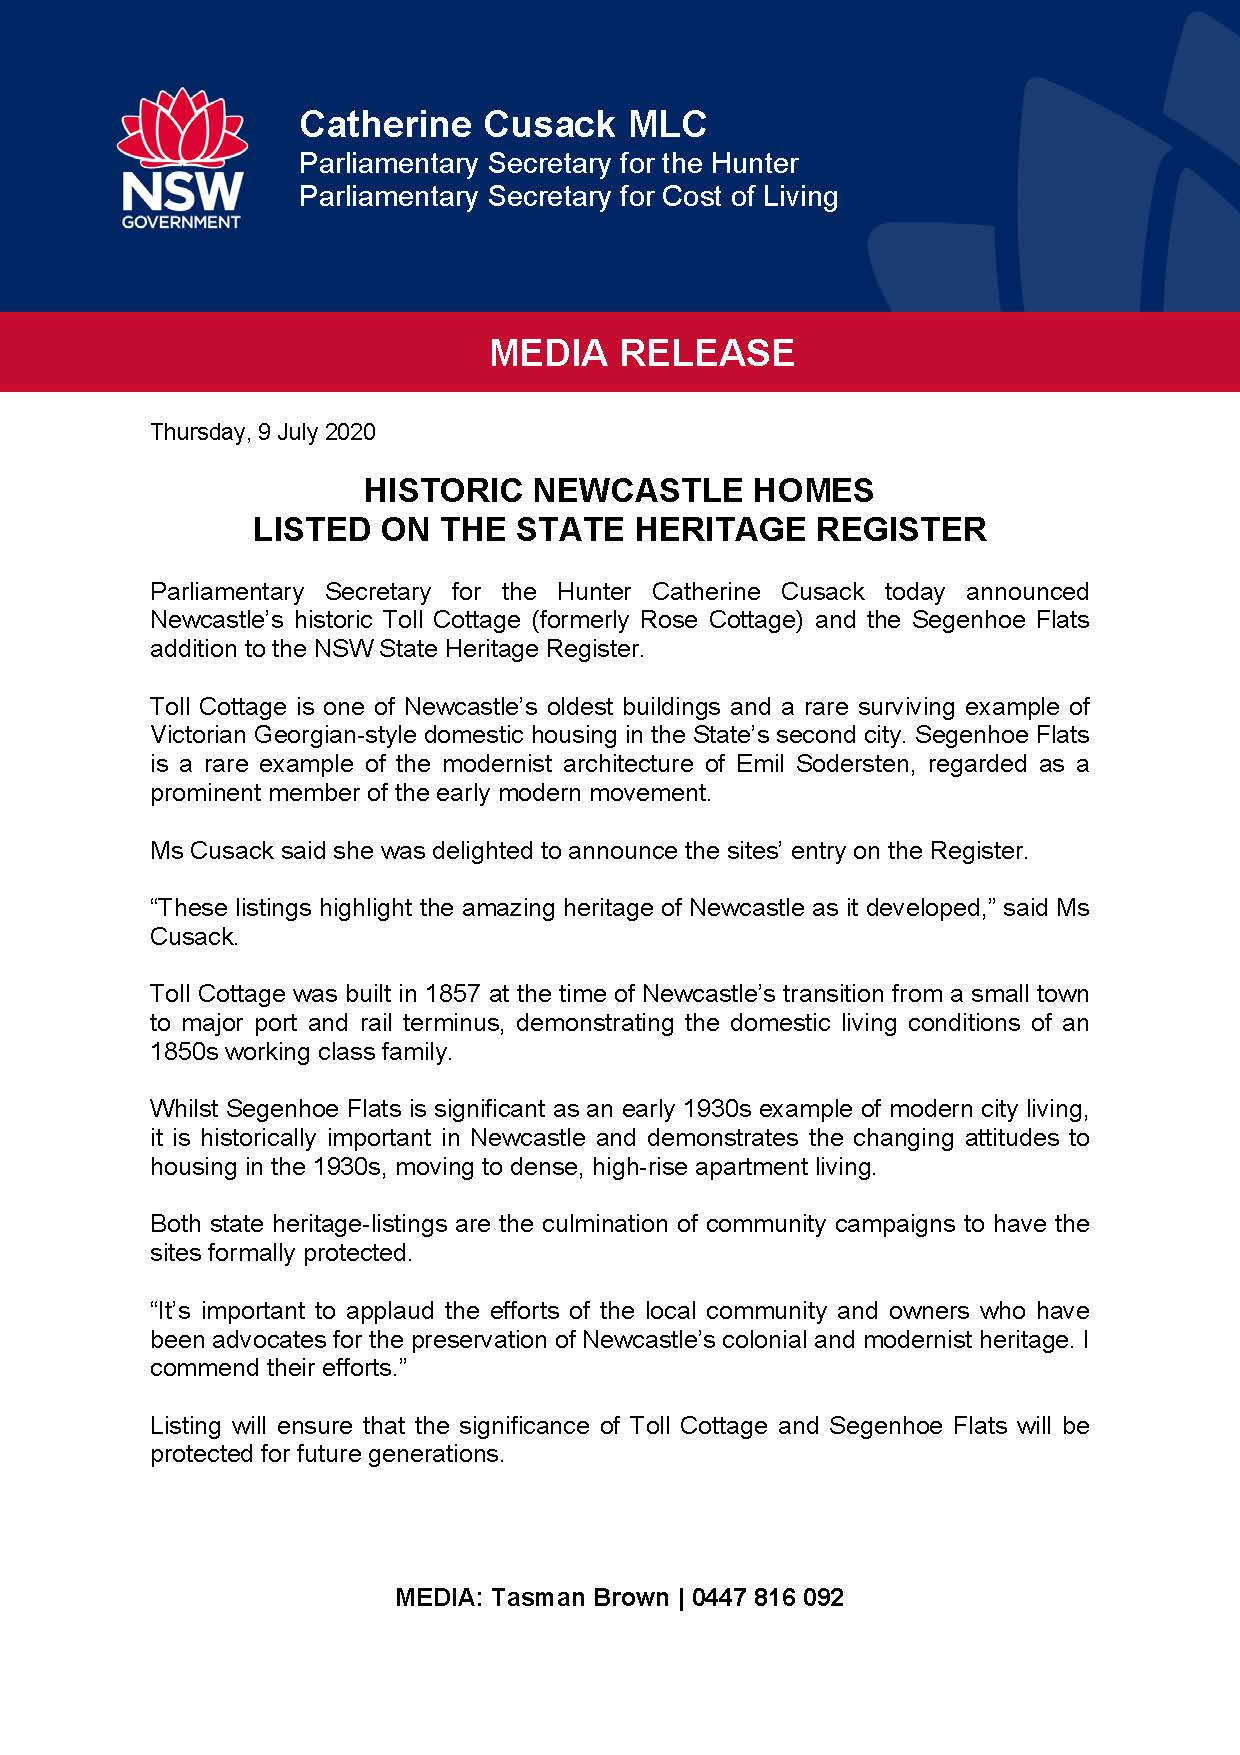 Catherine Cusack media release - HISTORIC NEWCASTLE HOMES LISTED ON THE STATE HERITAGE REGISTER